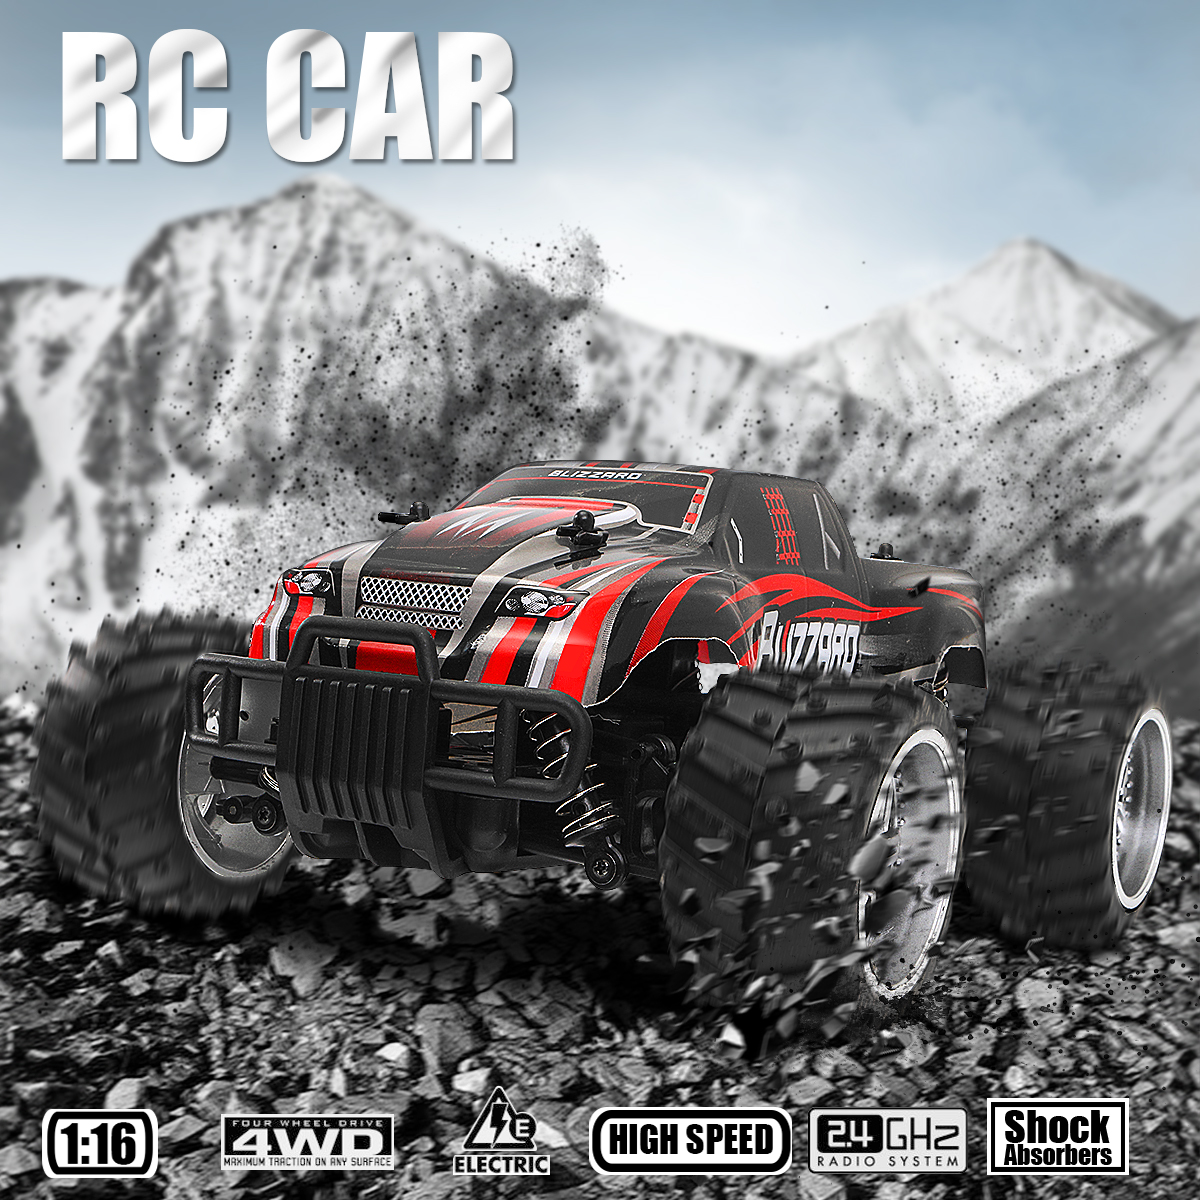 1/16 Scale 2WD 2.4GHz High Speed Radio Remote Control RC Crawler Racing Buggy Car Off Road Truck RTR Gift Toy for Children Kid 35